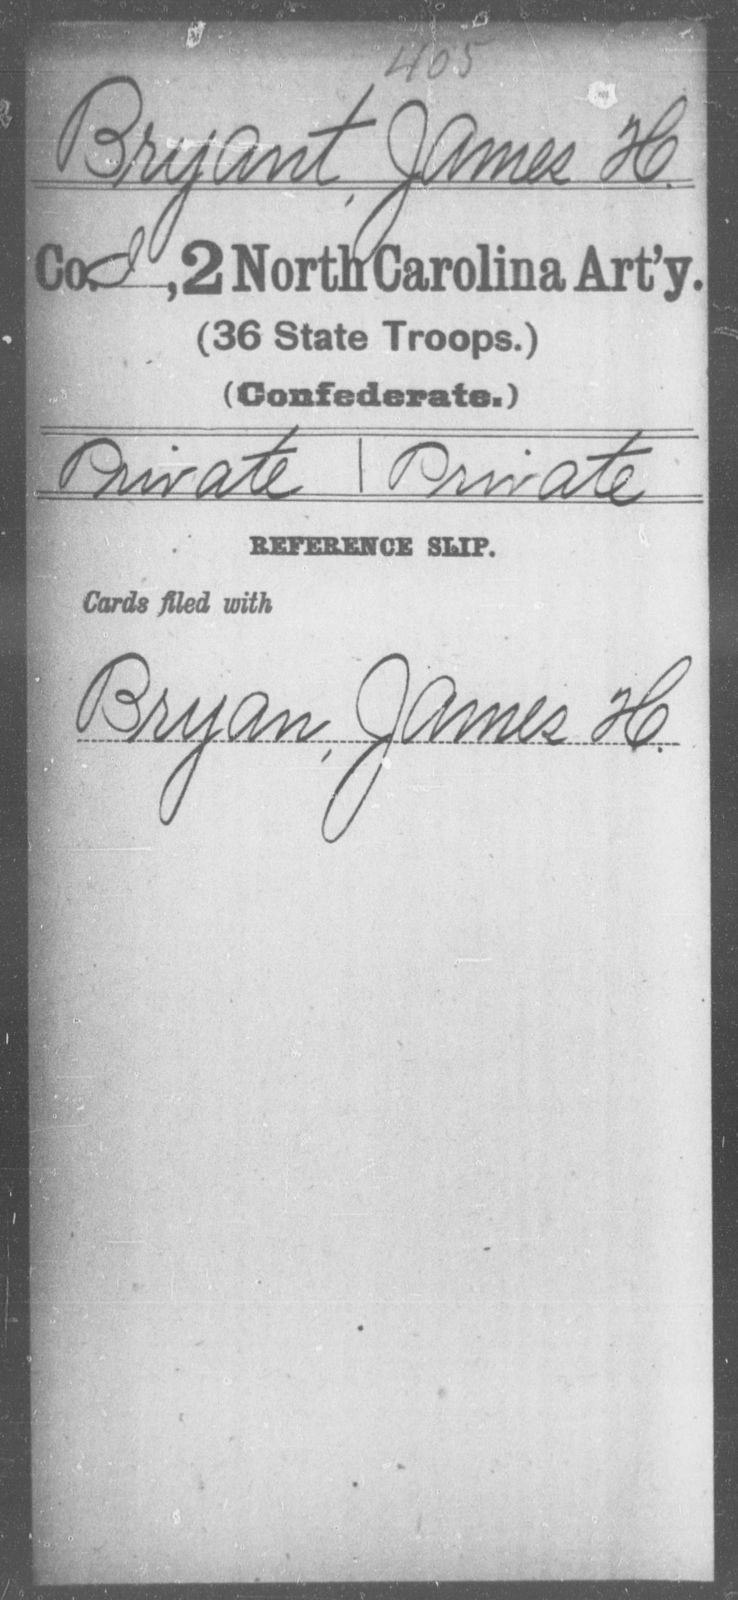 Bryant, James H - Second Artillery (36th State Troops)